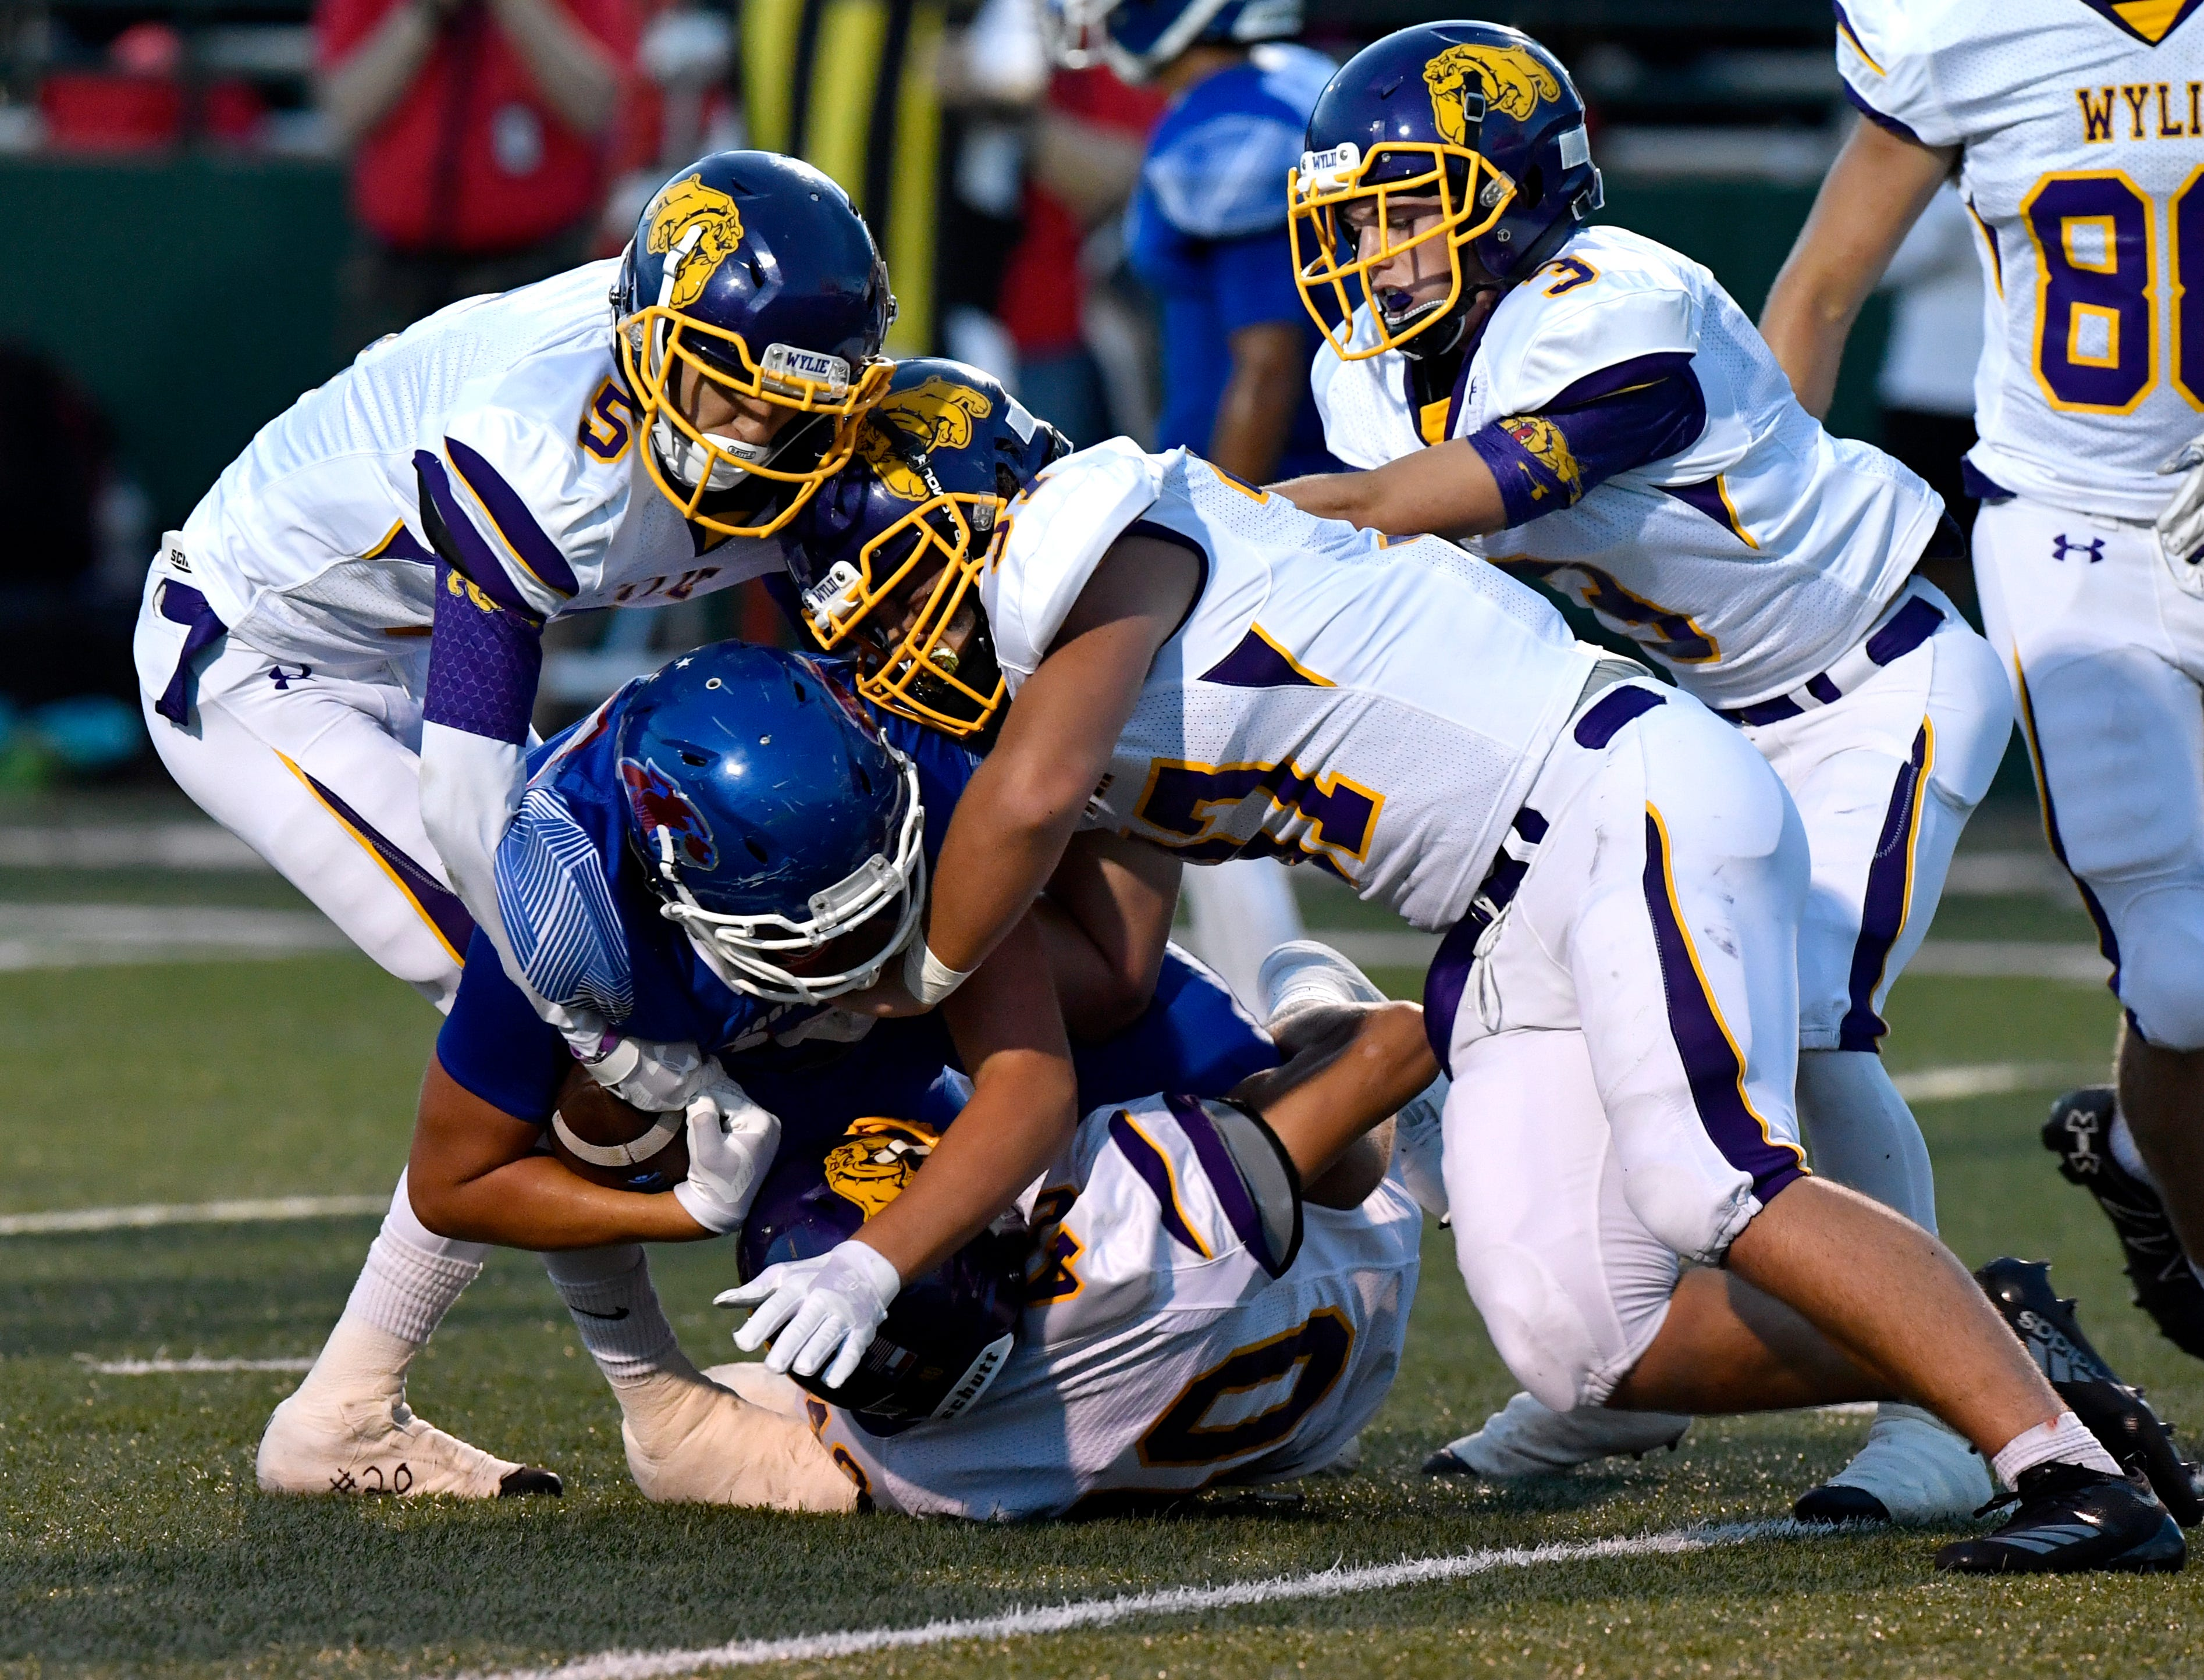 Wylie defenders Calvin Tiner (5), Cason Hanna (37) and Jaden Speegle (3) bring down Cooper's Braiden Hill during the first-ever game between the two teams. The Bulldogs are trying to bounce back from that 48-0 defeat and 0-4 start this week at Brownwood.